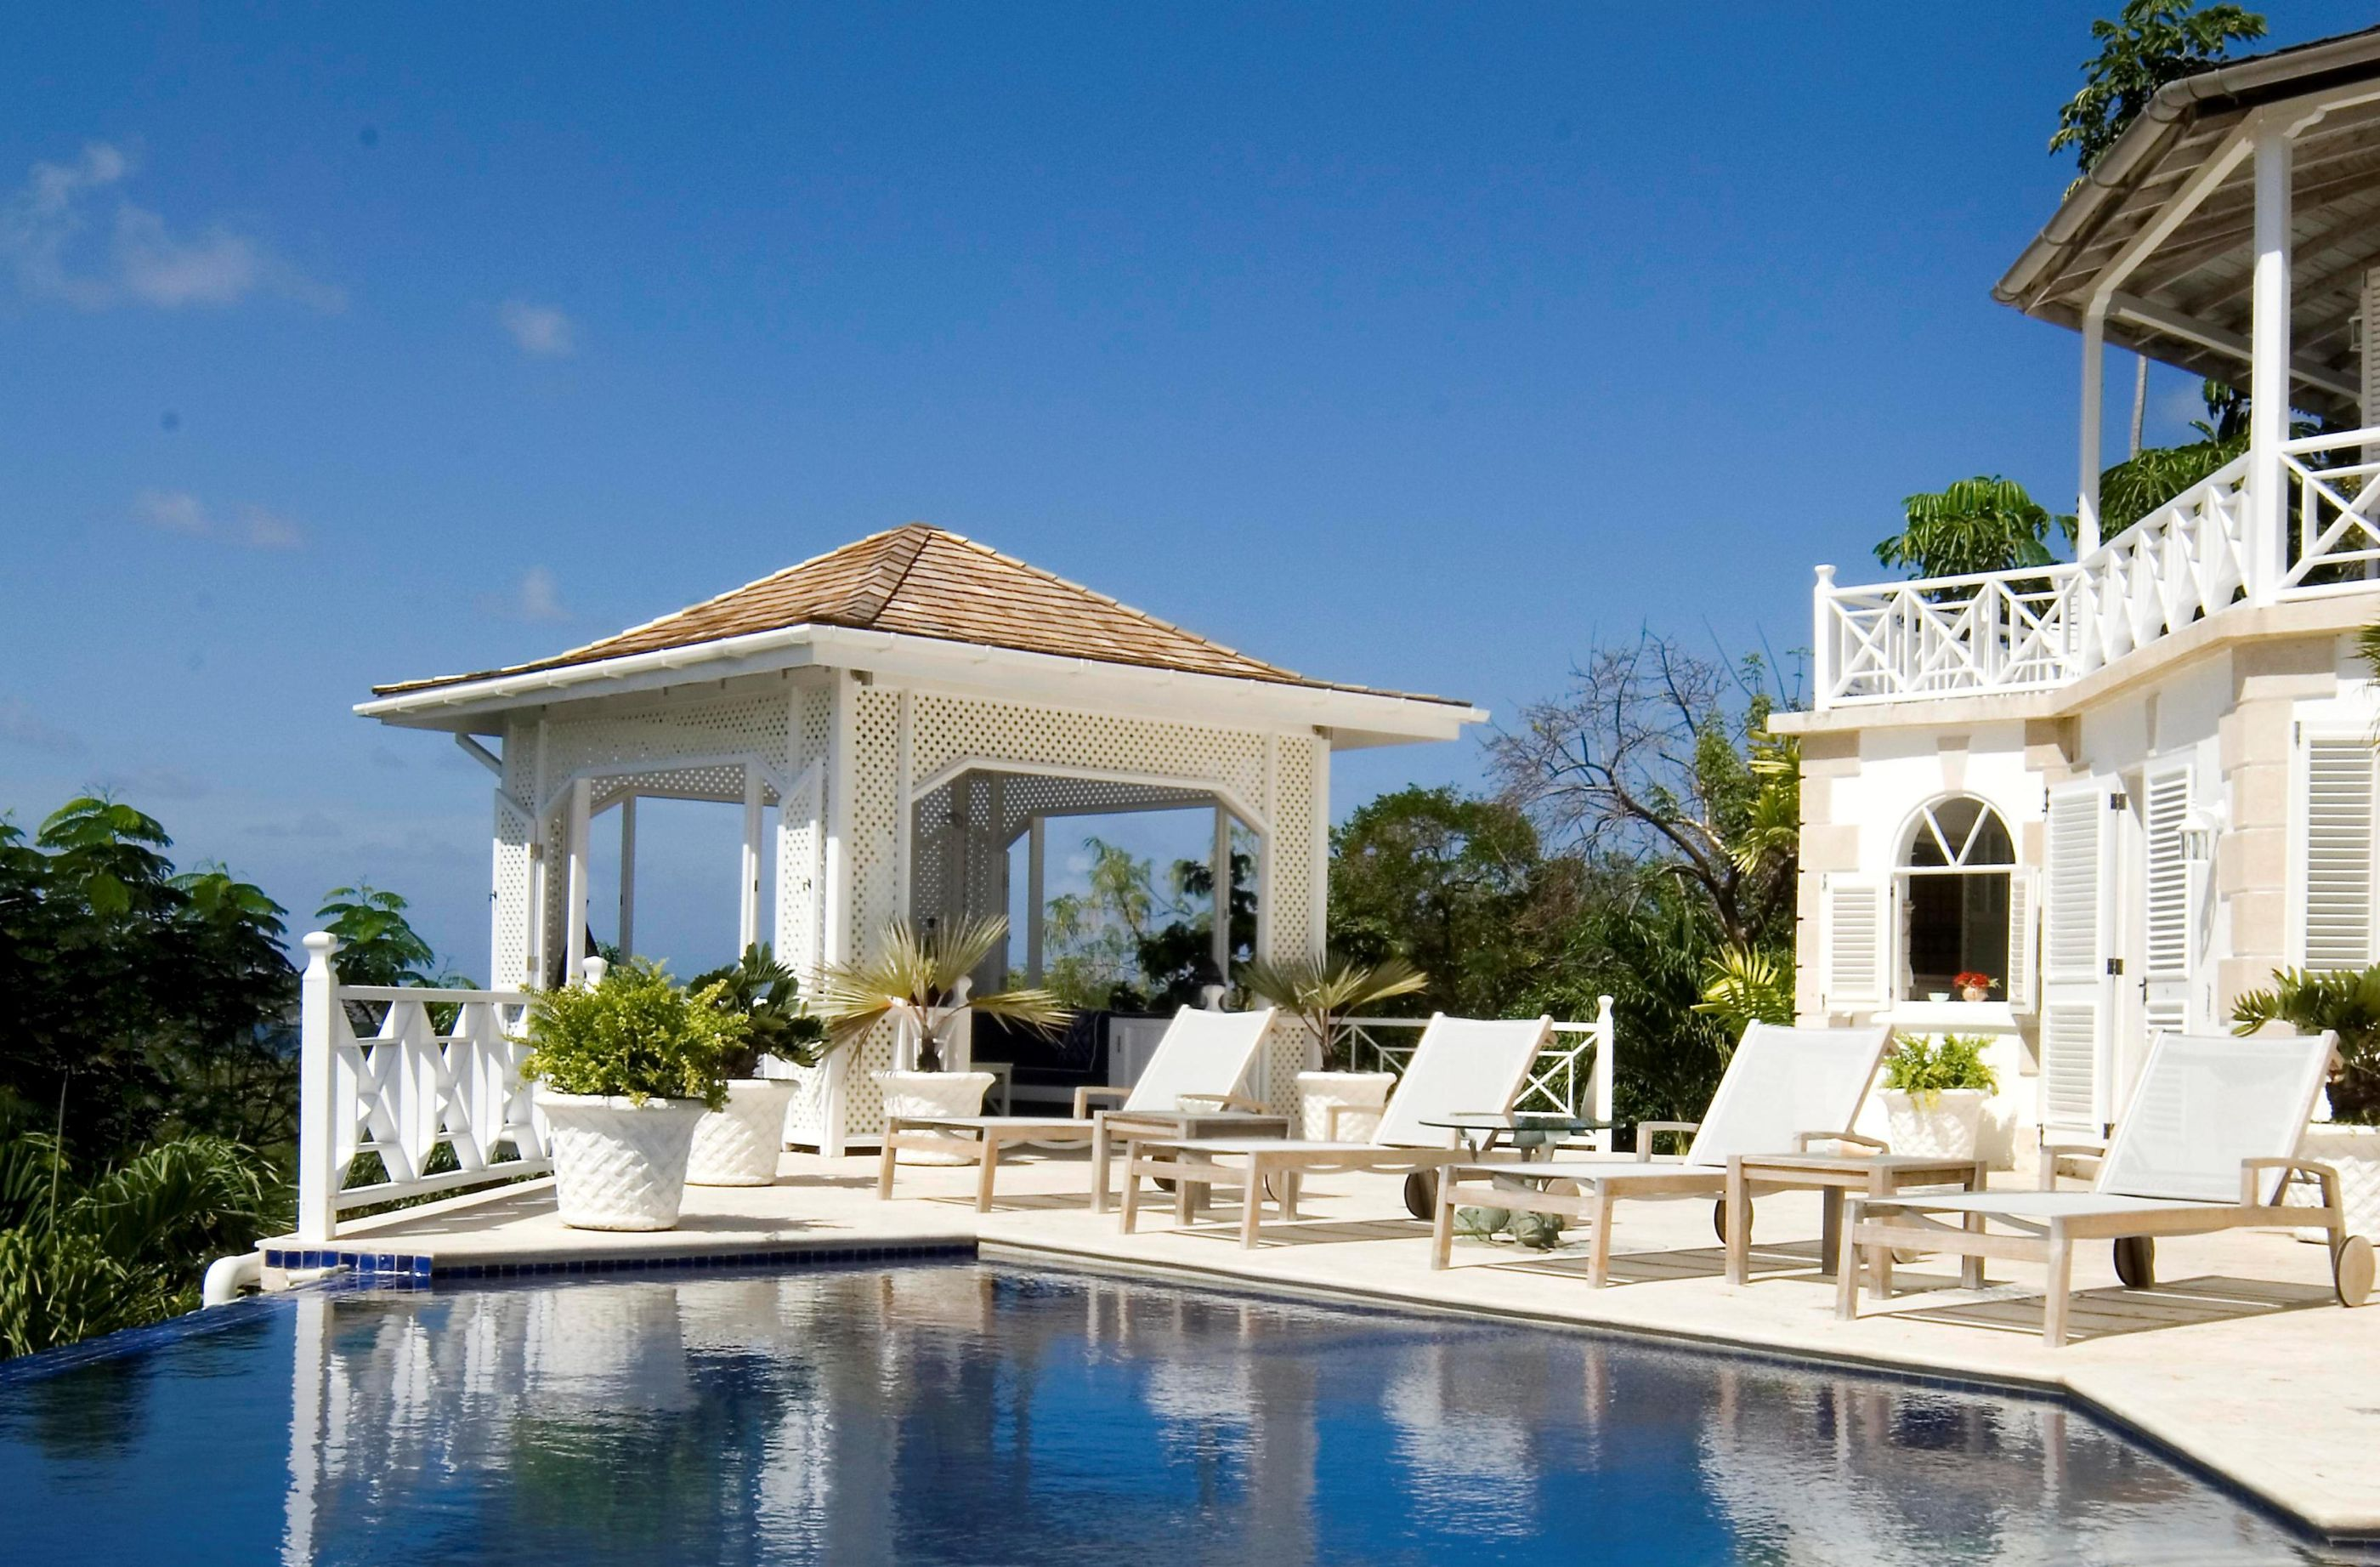 wimming pool and pool house with sun loungers at Callaloo, Mustique